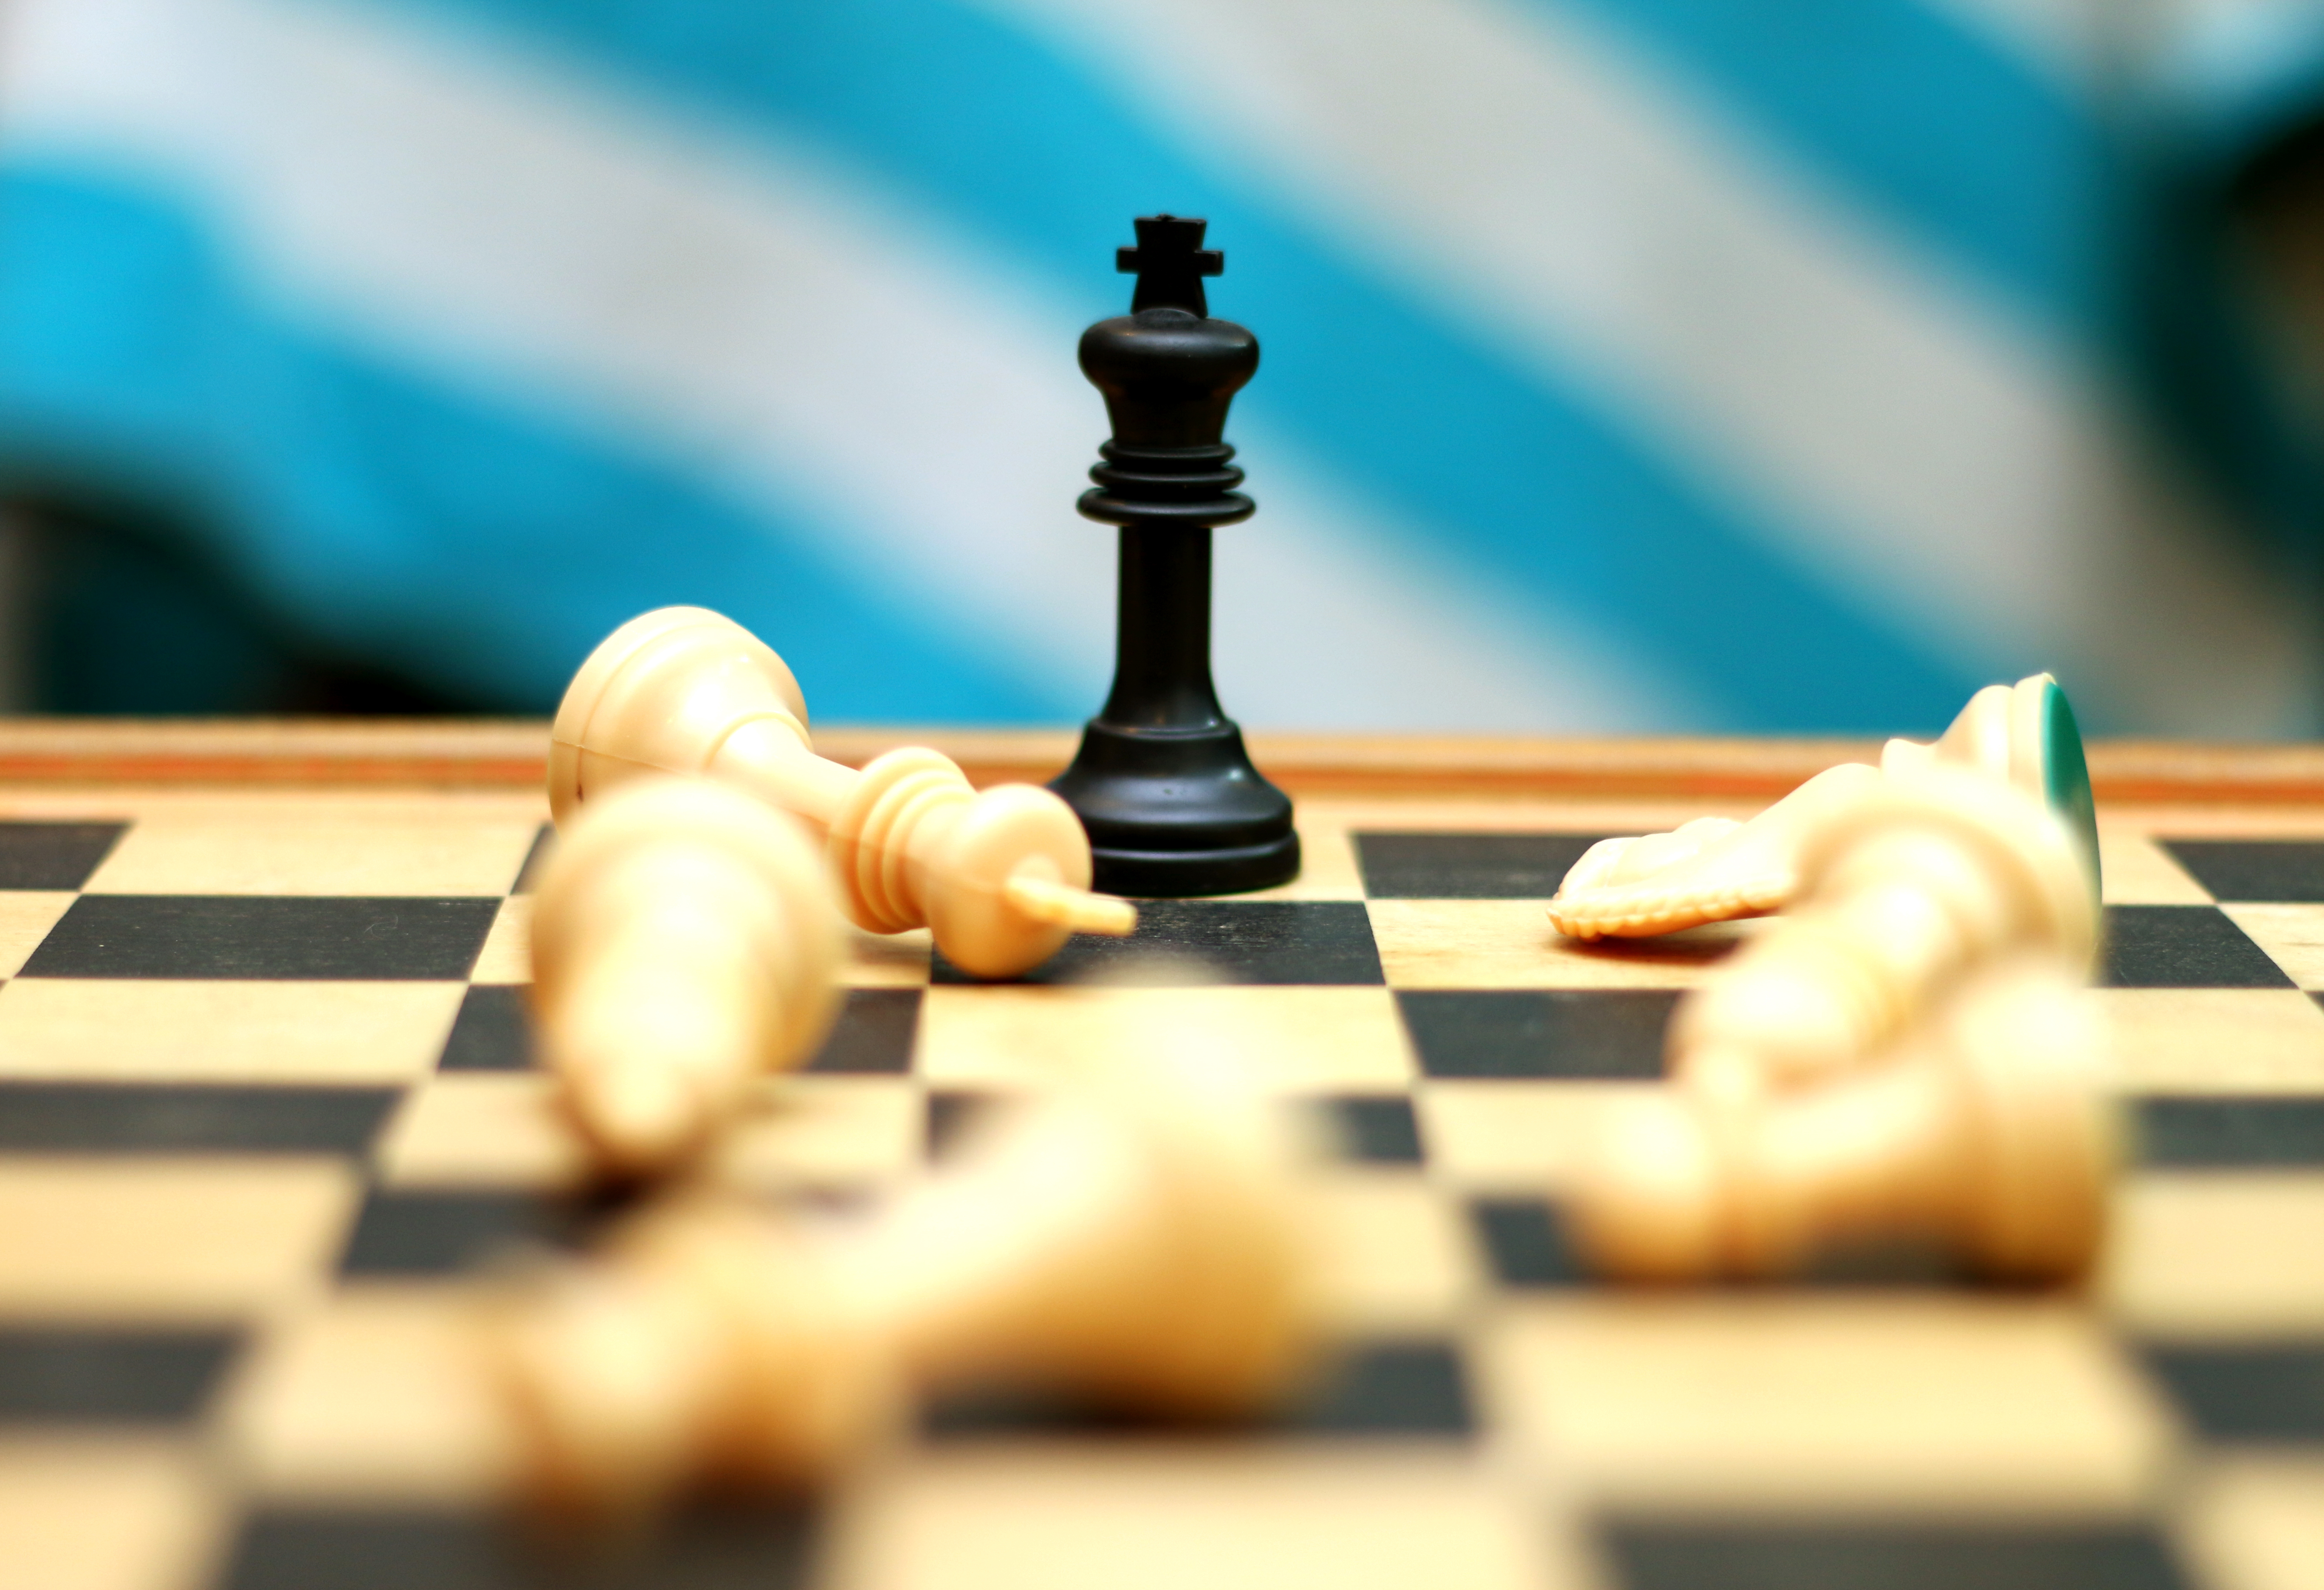 Canva - King Chess Piece